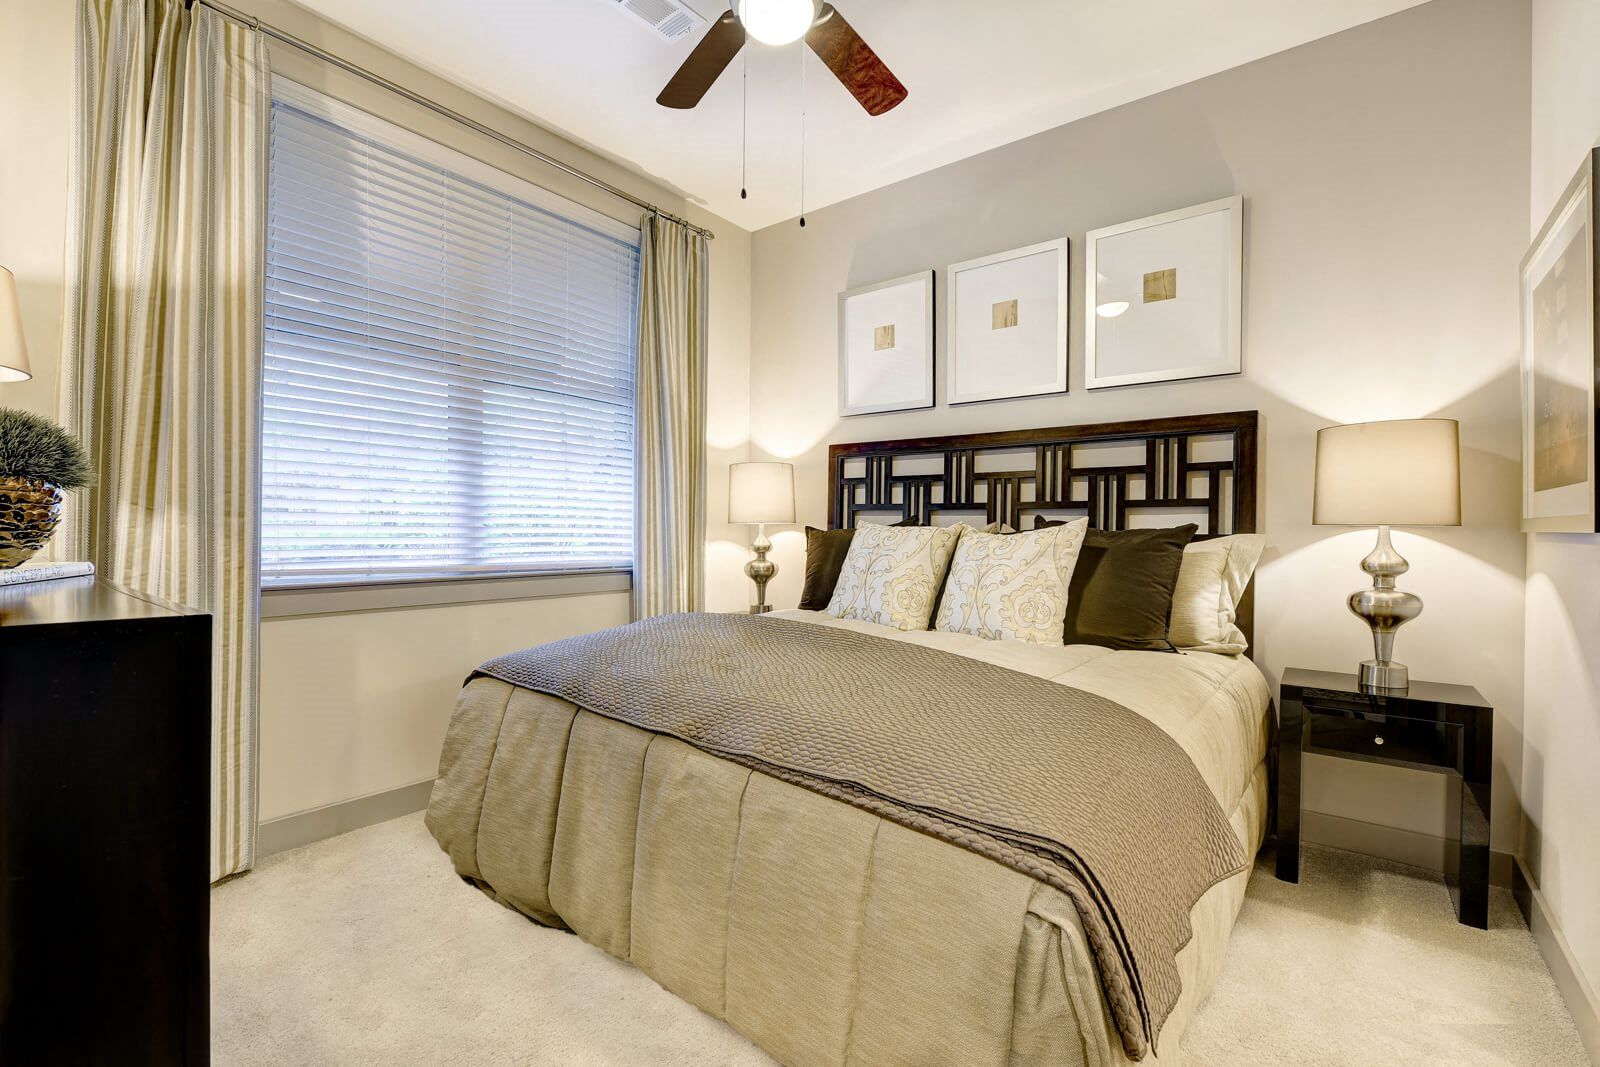 Ceiling Fans in All Bedrooms at Windsor at Cambridge Park, 160 Cambridge Park Drive, Cambridge